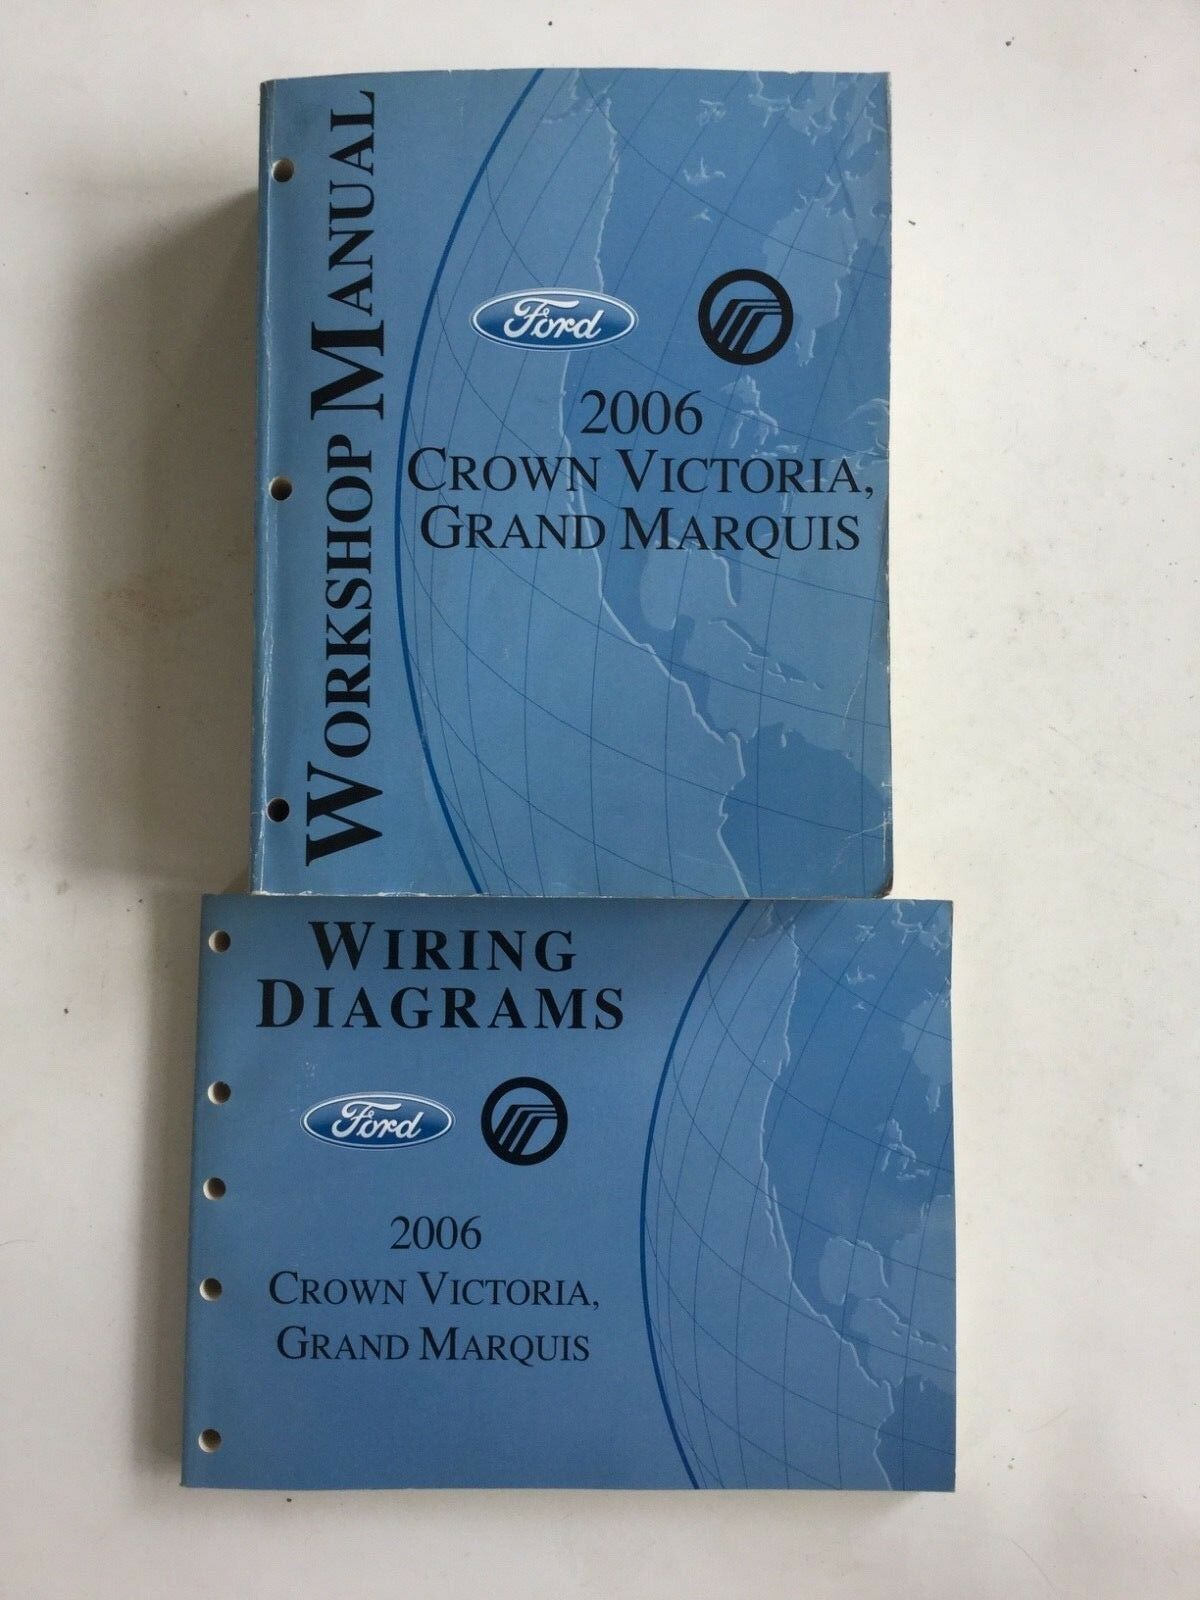 2006 Crown Victoria, Grand Marquis Workshop Manual With Wiring Diagrams Manual